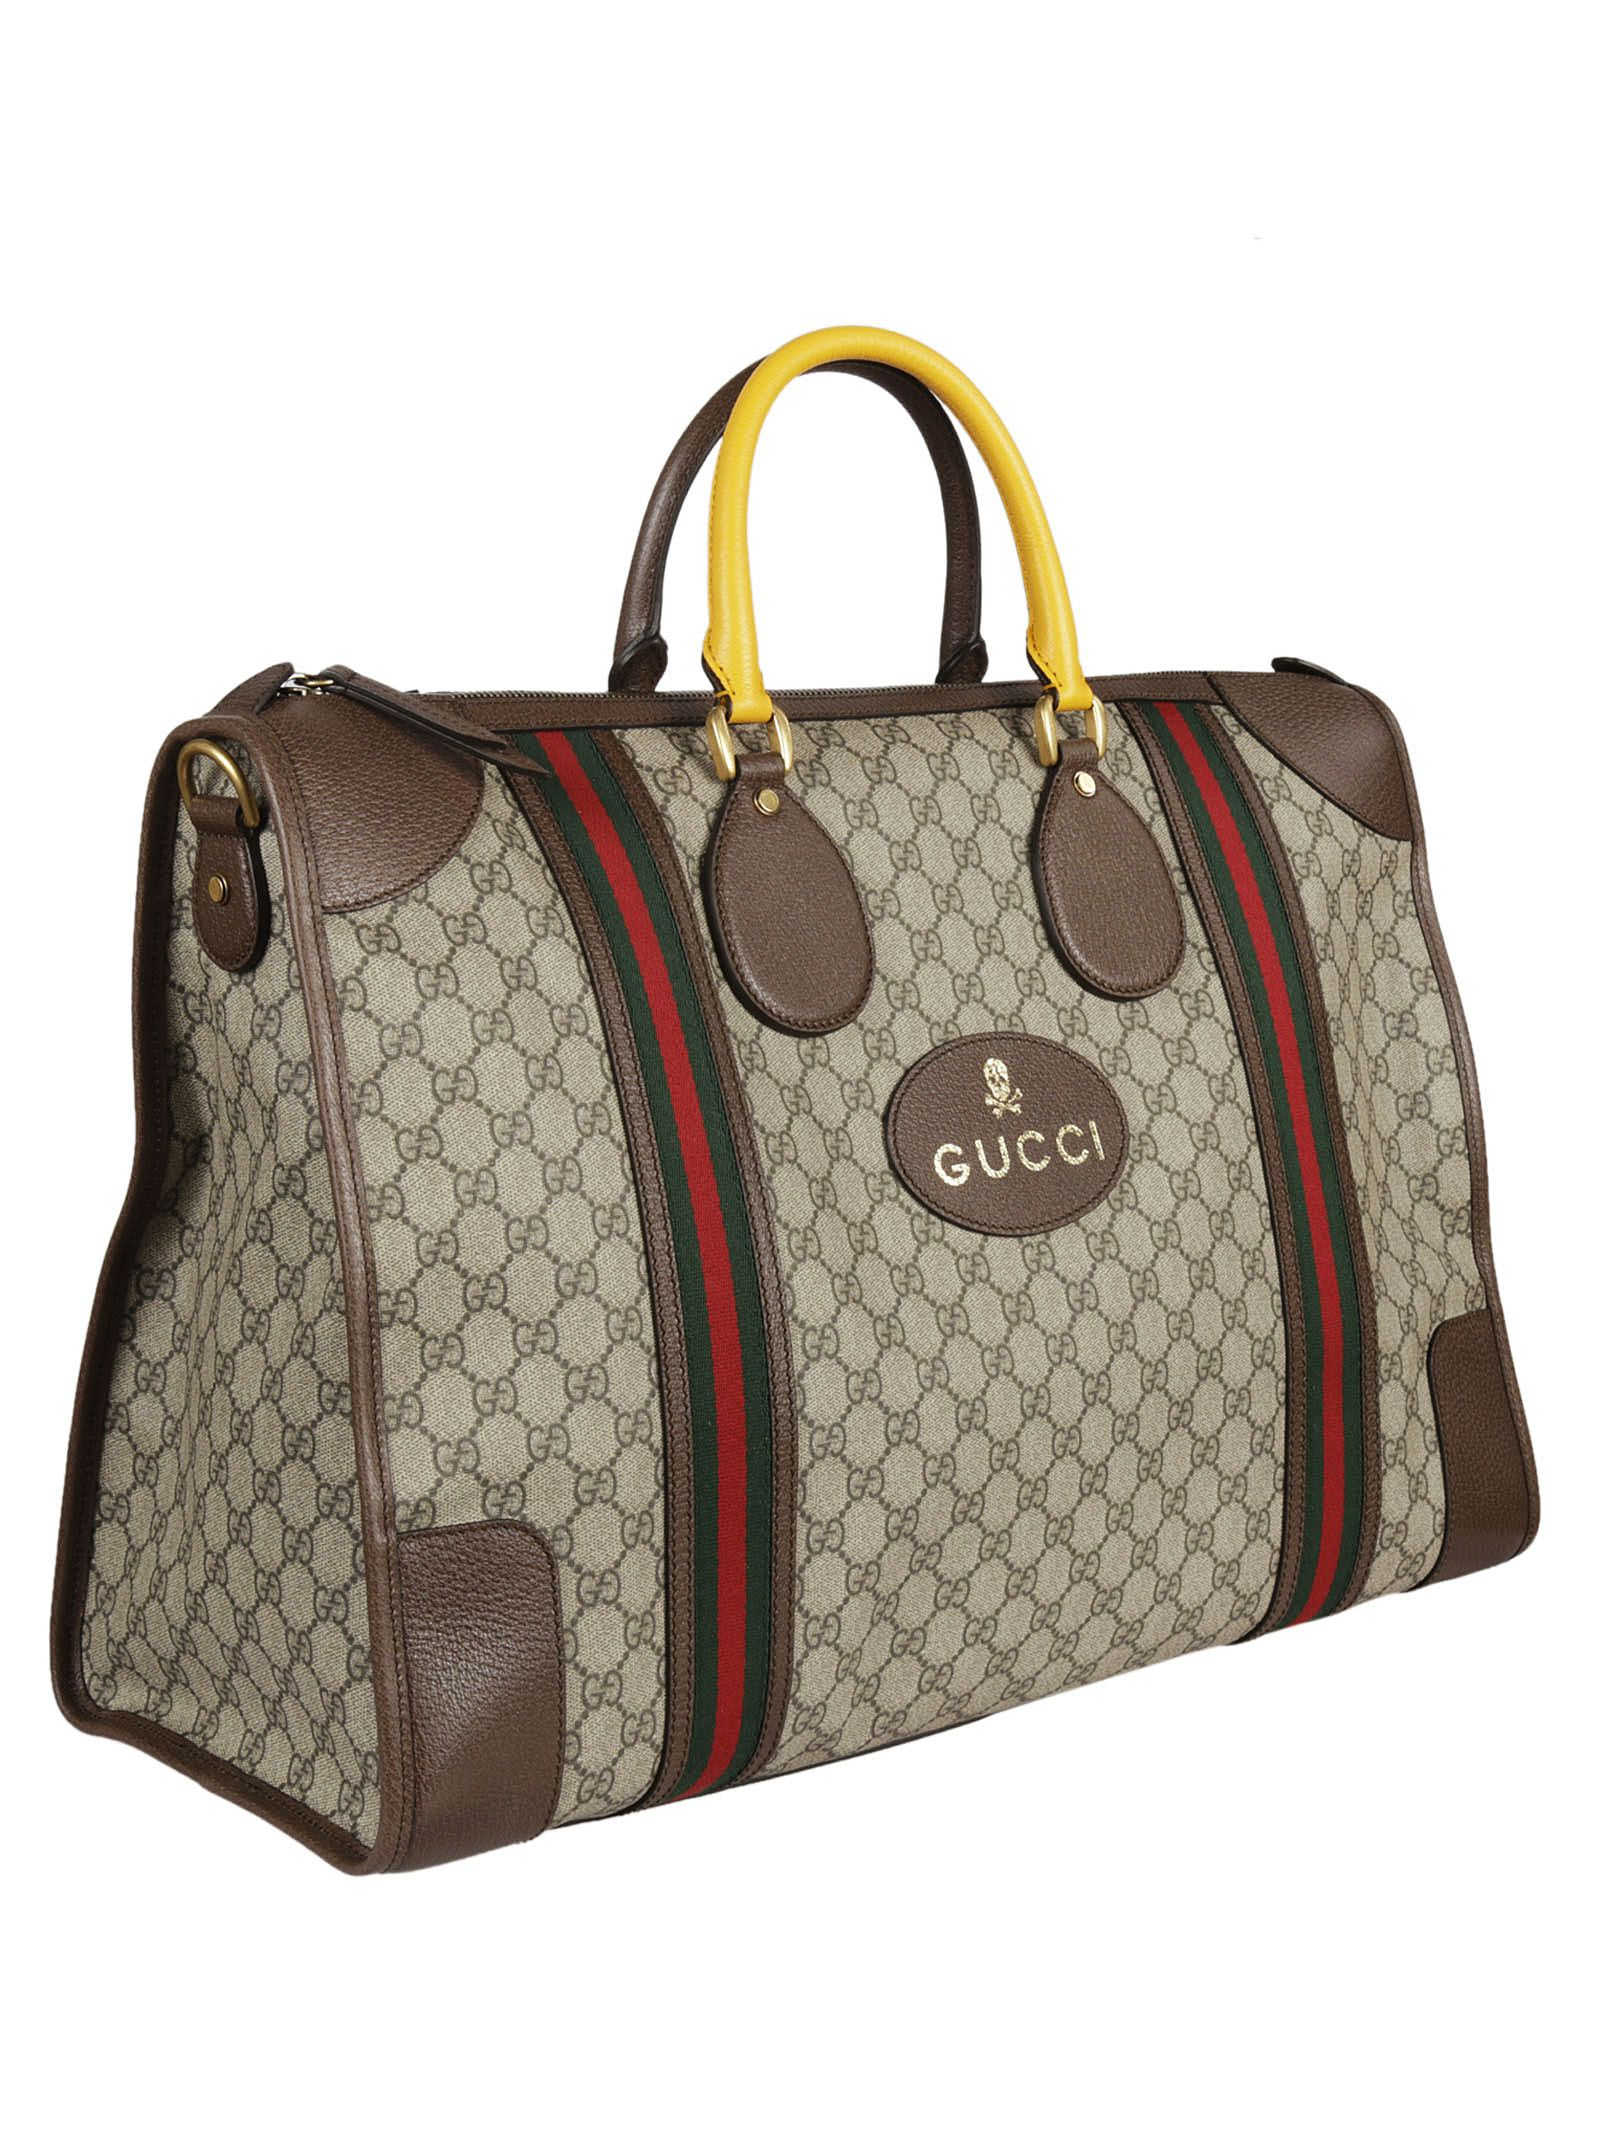 799ec3287 Supreme Duffle Bag Gucci | Stanford Center for Opportunity Policy in ...